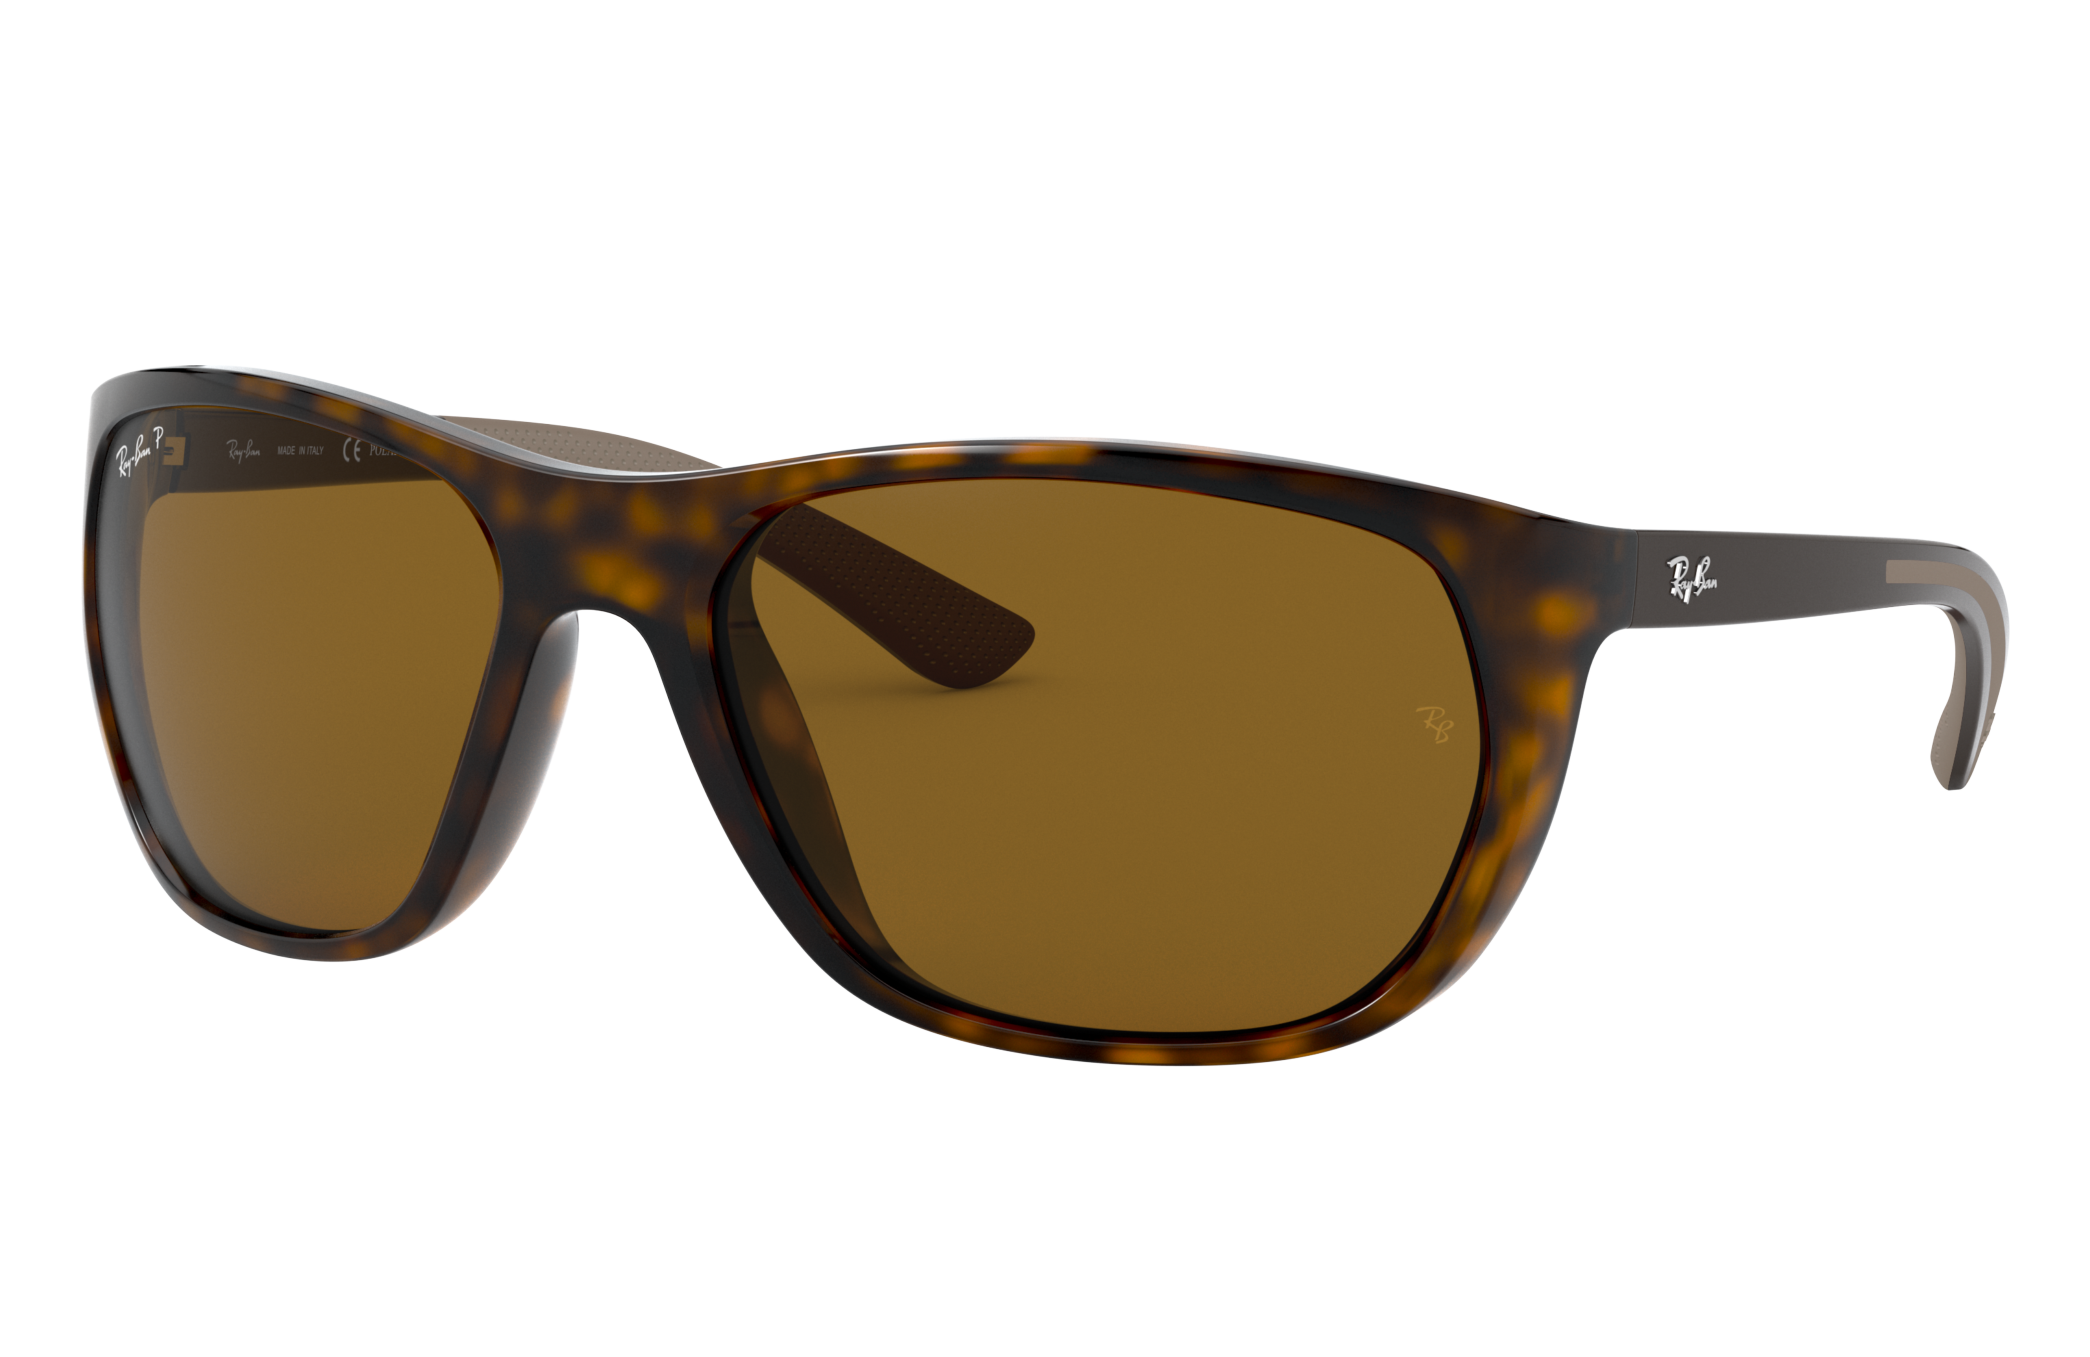 Ray-Ban Rb4307 Brown, Polarized Brown Lenses - RB4307